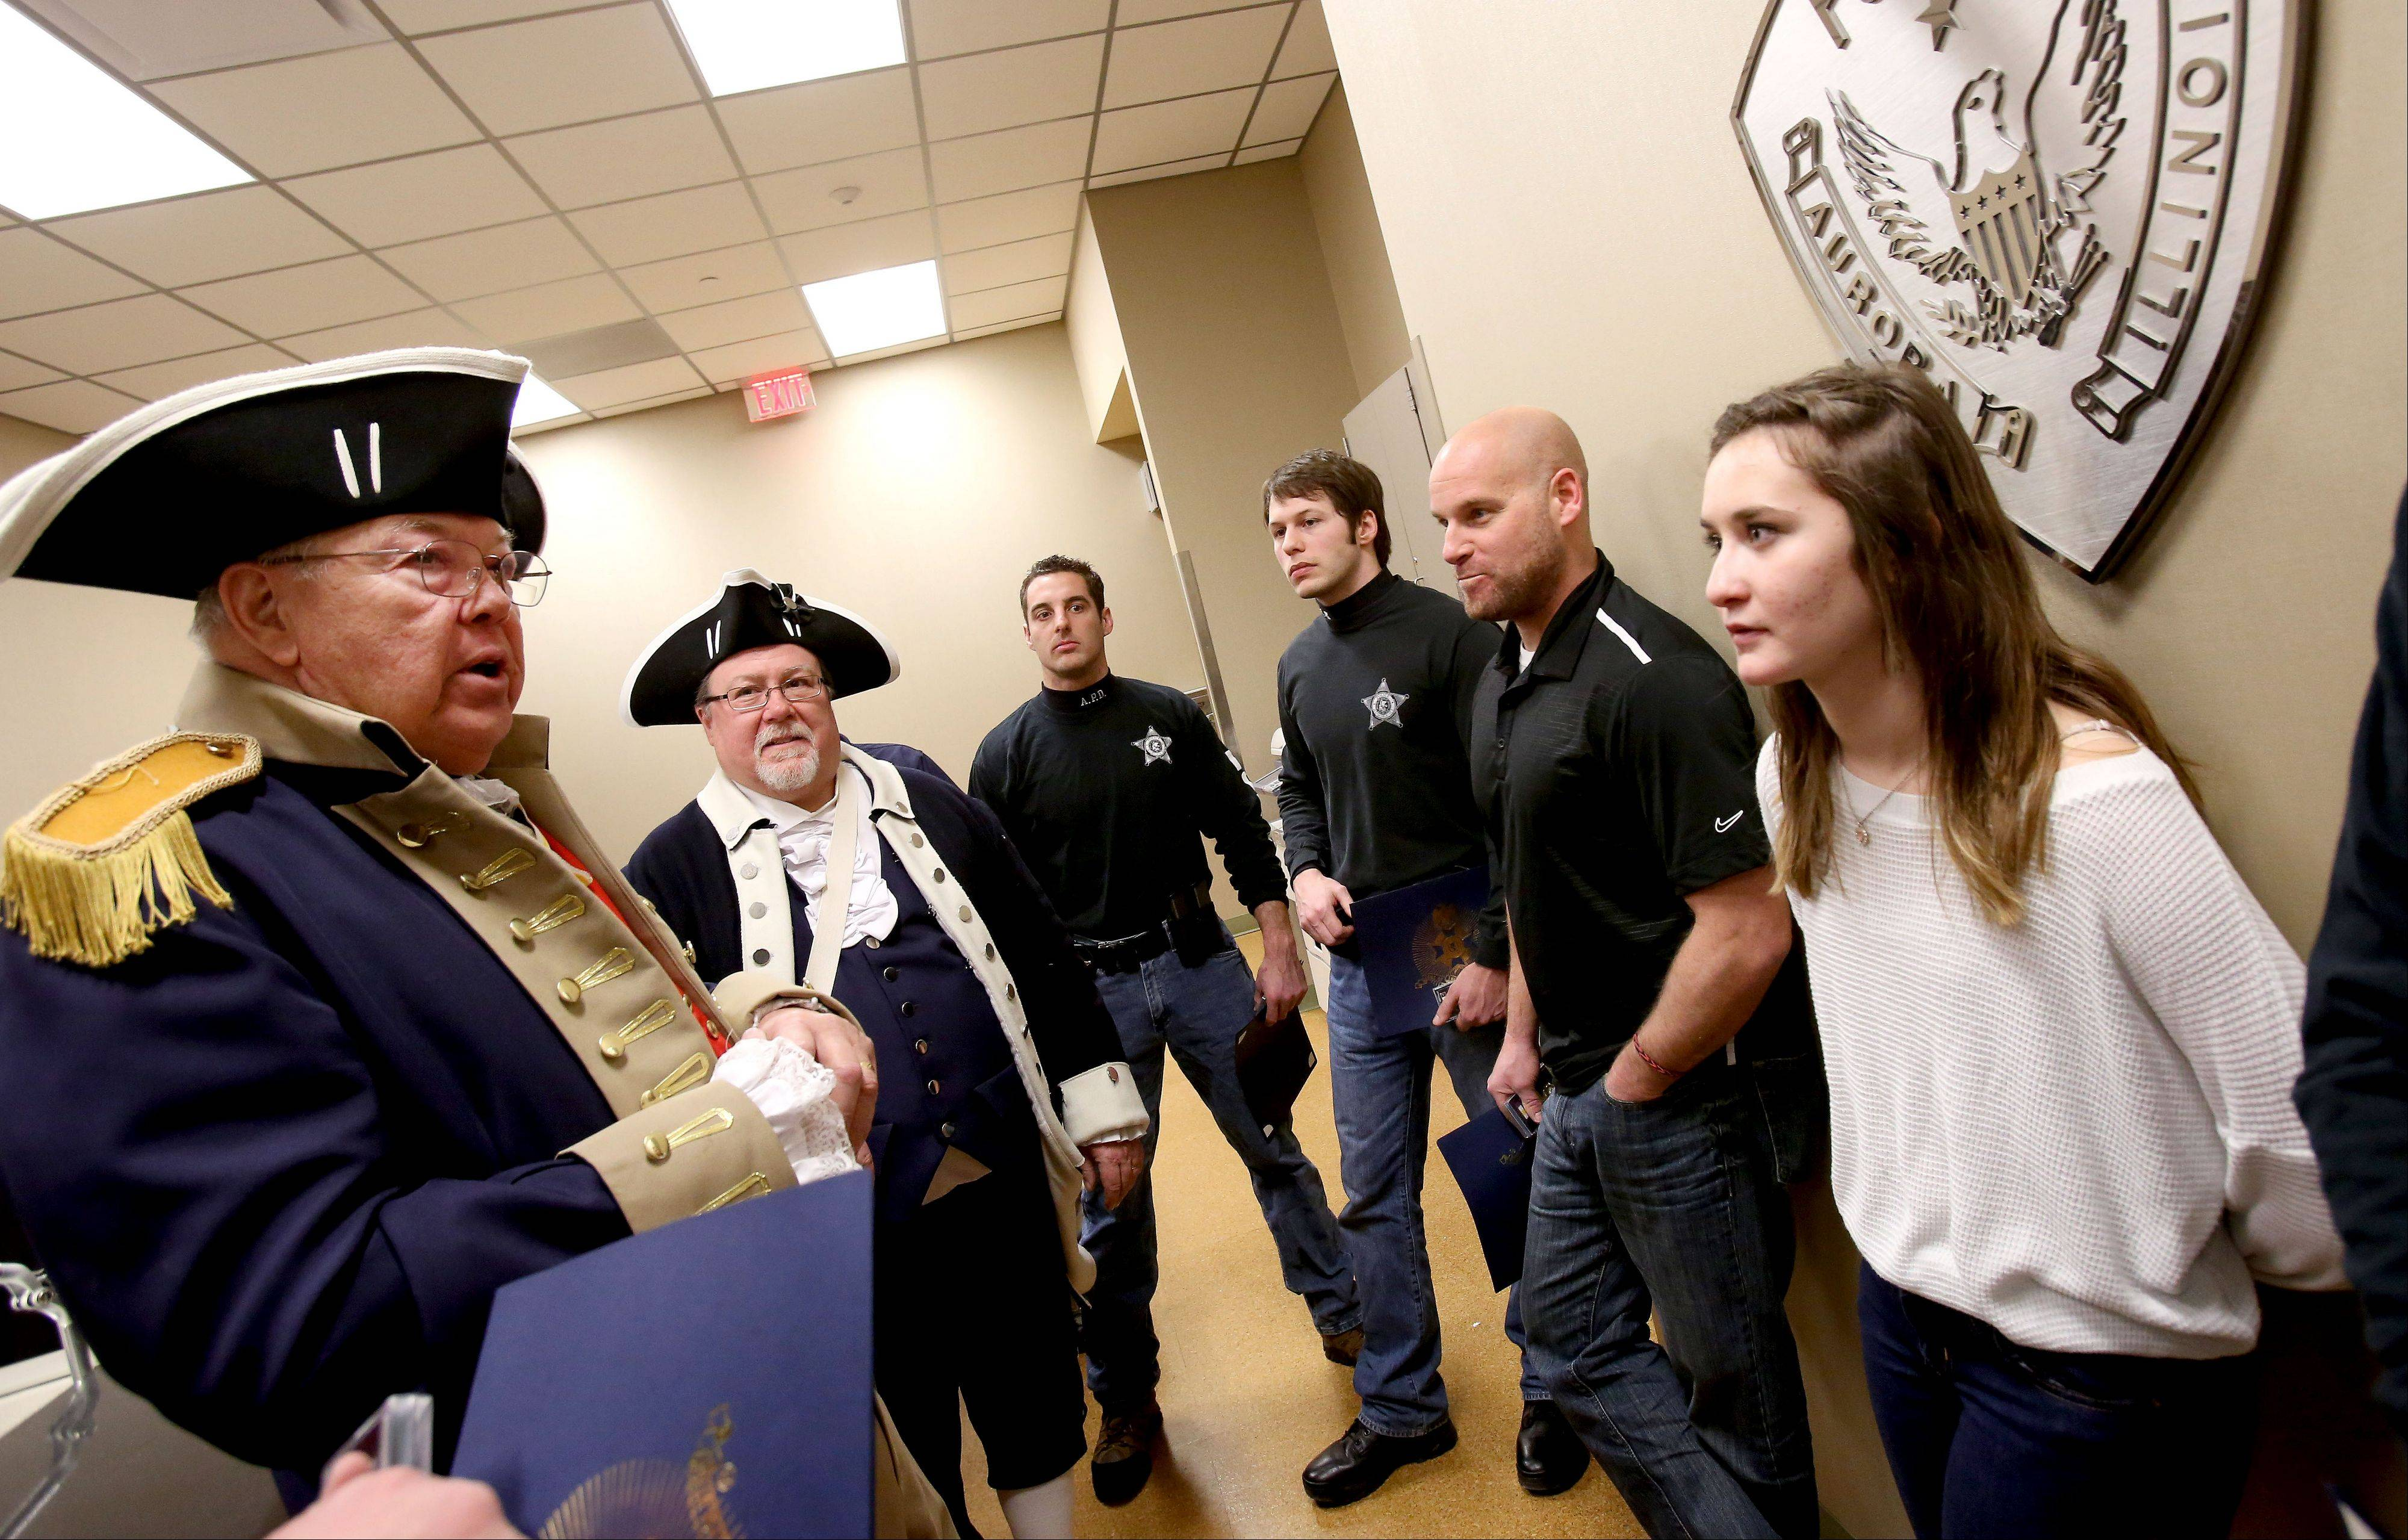 Rod Herbig, left, president of the Fox Valley Chapter of the Sons of the American Revolution, and member Mike Campagnolo talk to Aurora police officers and Annie Prosser, 15, who the officers saved last March from a car that had plunged into a frigid pond.